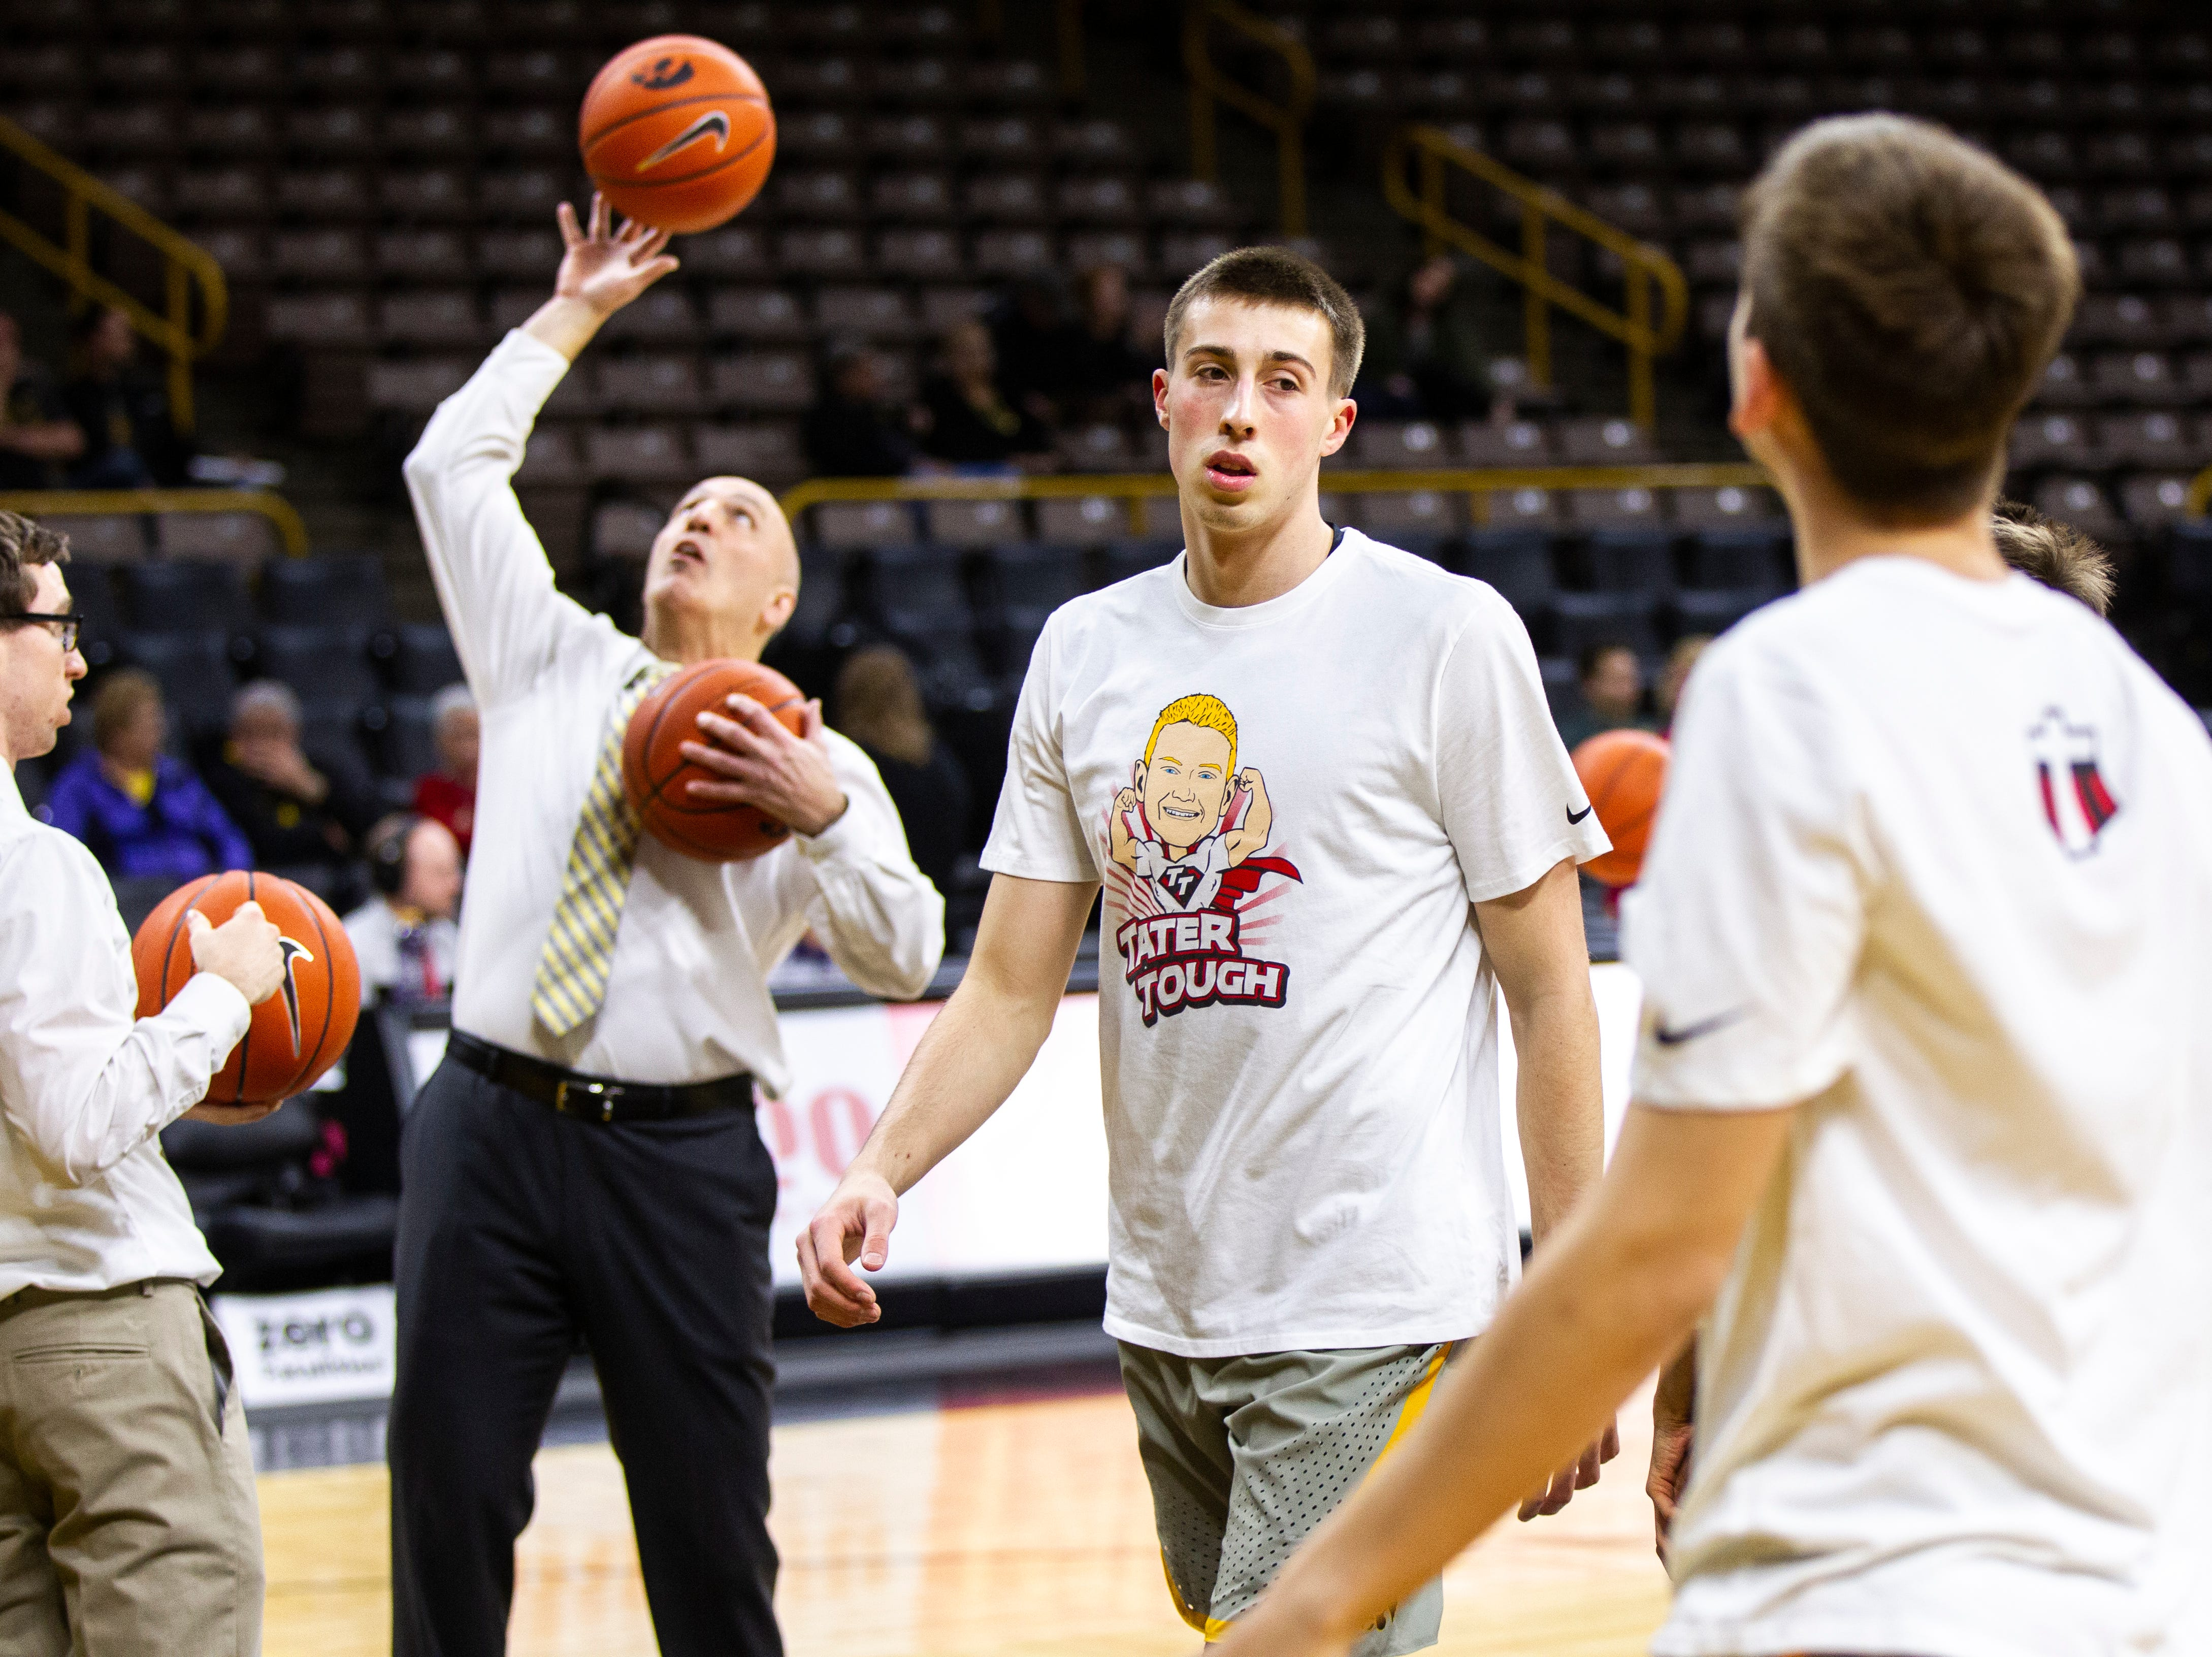 Iowa guard Joe Wieskamp (10) warms up while wearing a shirt featuring a logo for Tate Schaefer, an 11-year-old from Williamsburg who has a tumor in his brain before a NCAA Big Ten Conference men's basketball game on Sunday, Jan. 6, 2019, at the Carver-Hawkeye Arena in Iowa City, Iowa.